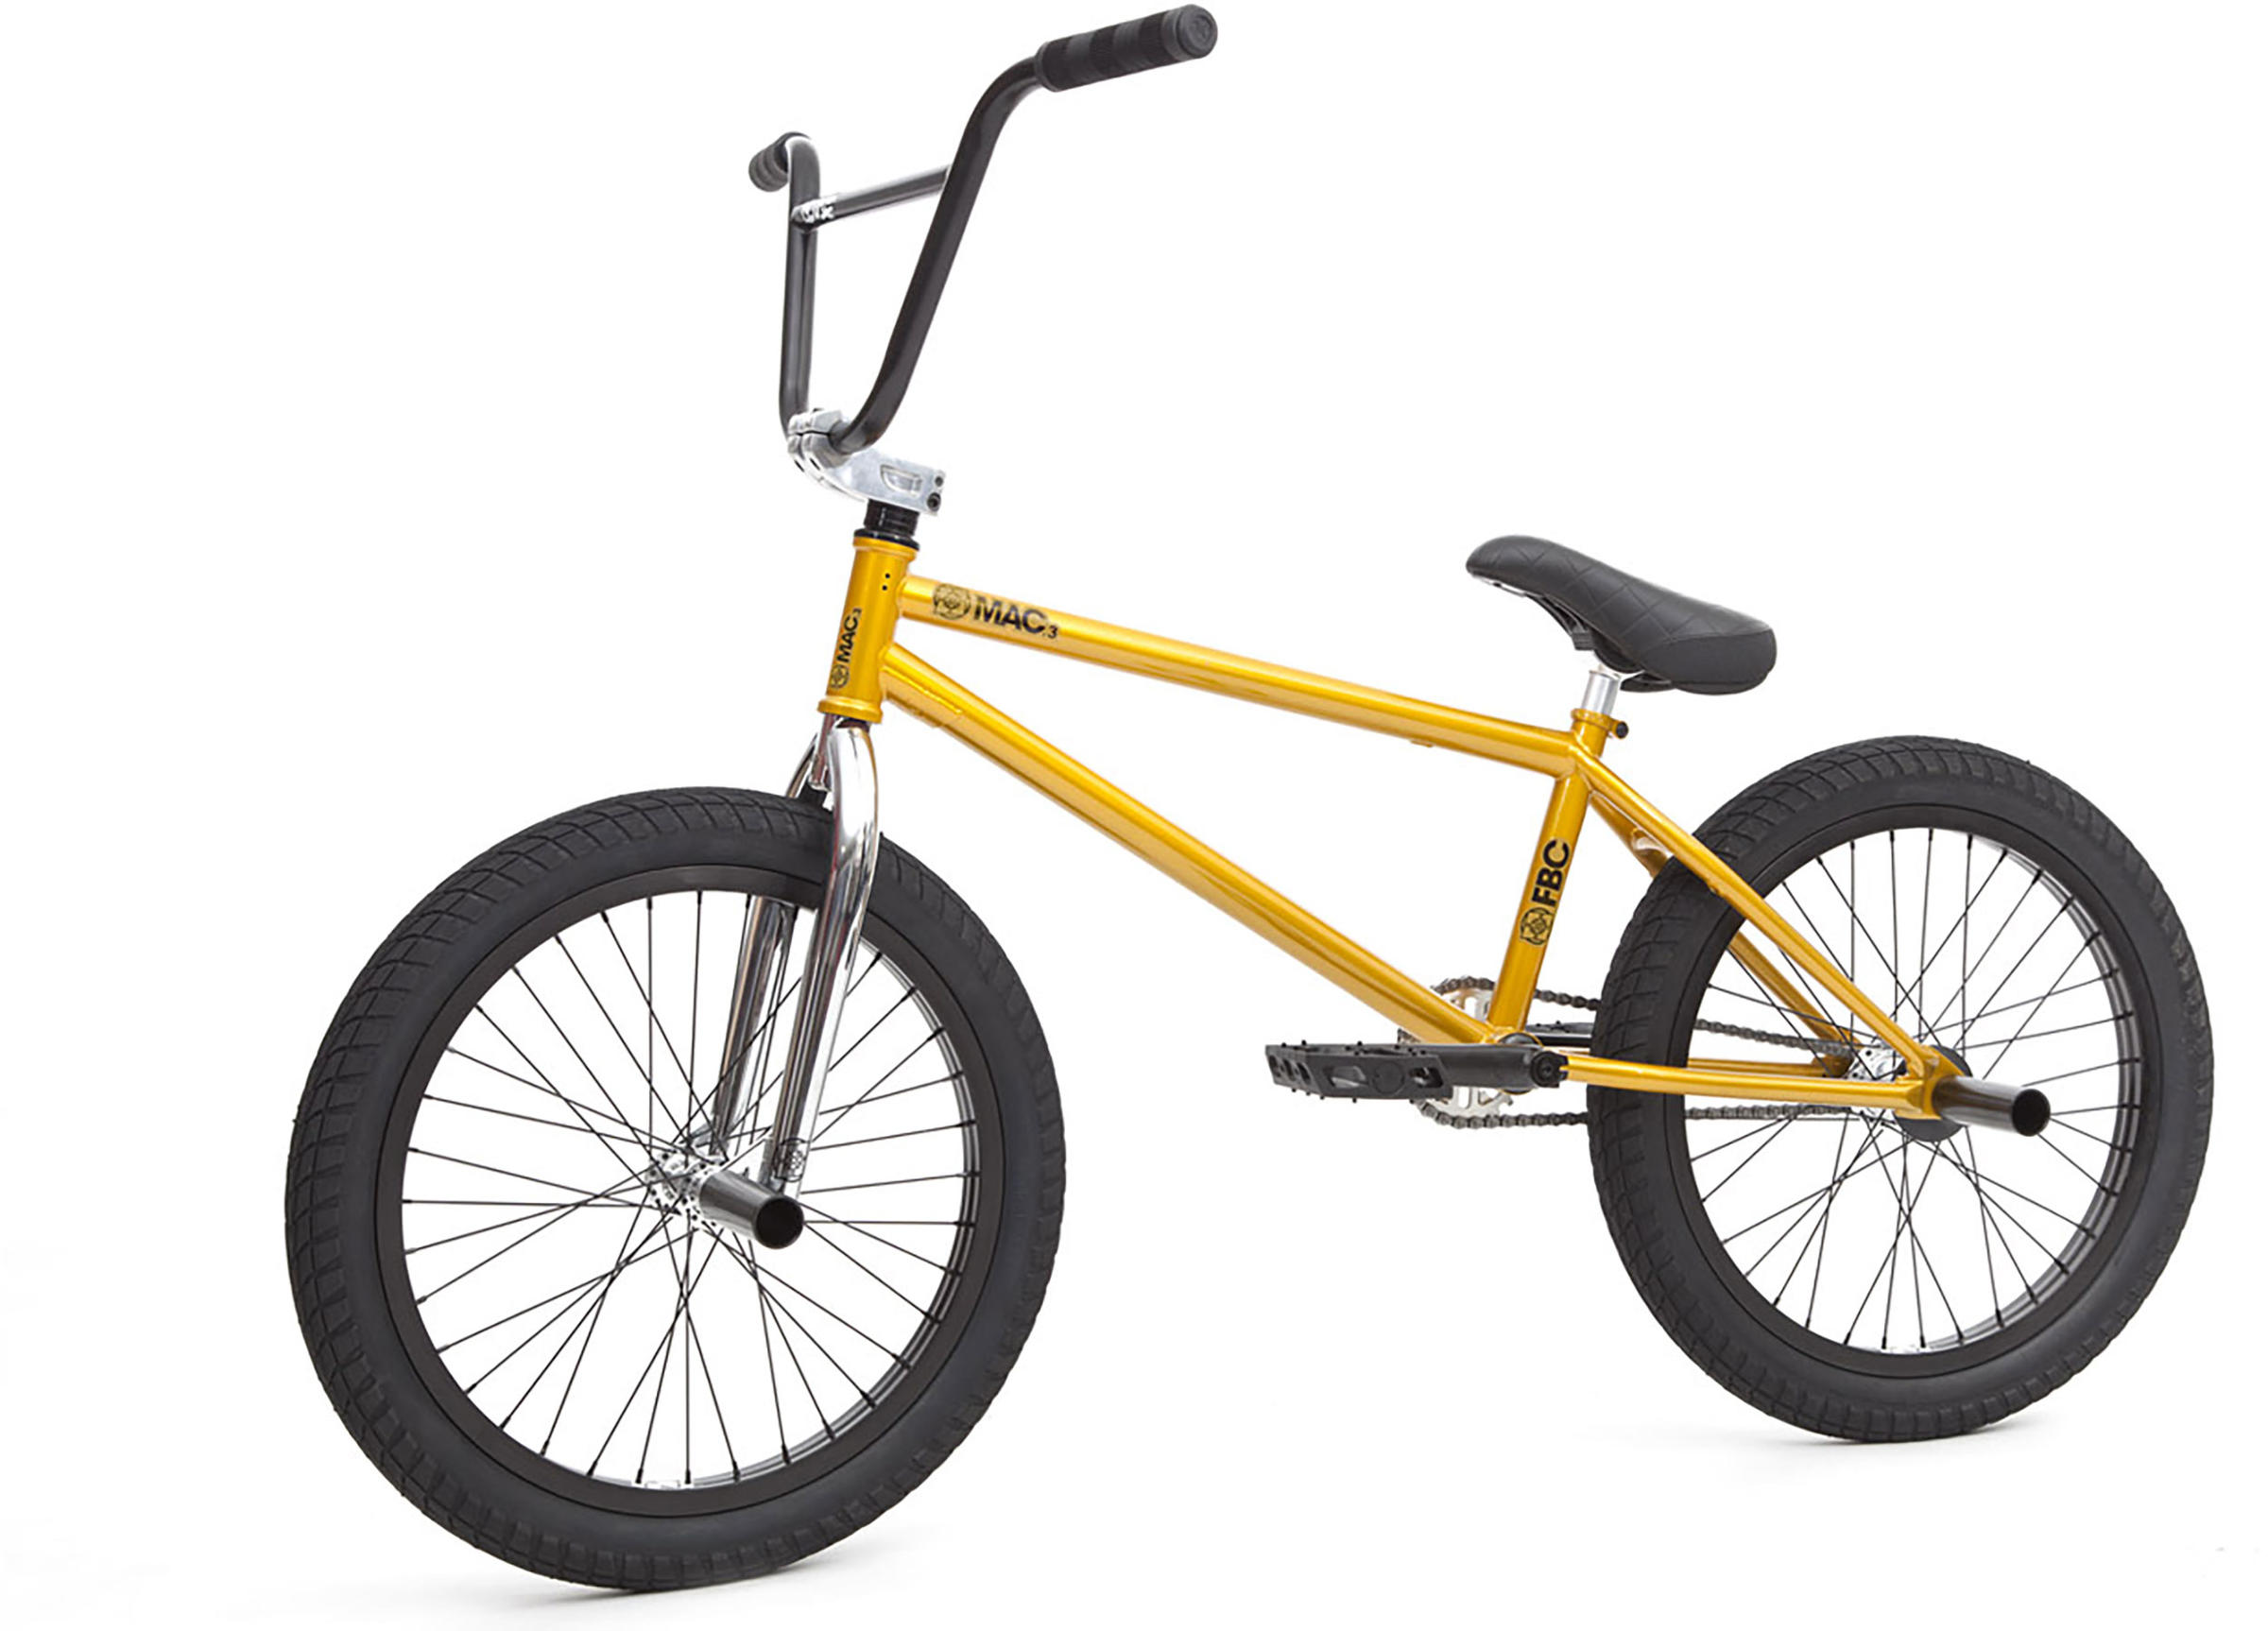 Fit Bike Co Mac 3 2016 - Bikes, BMX